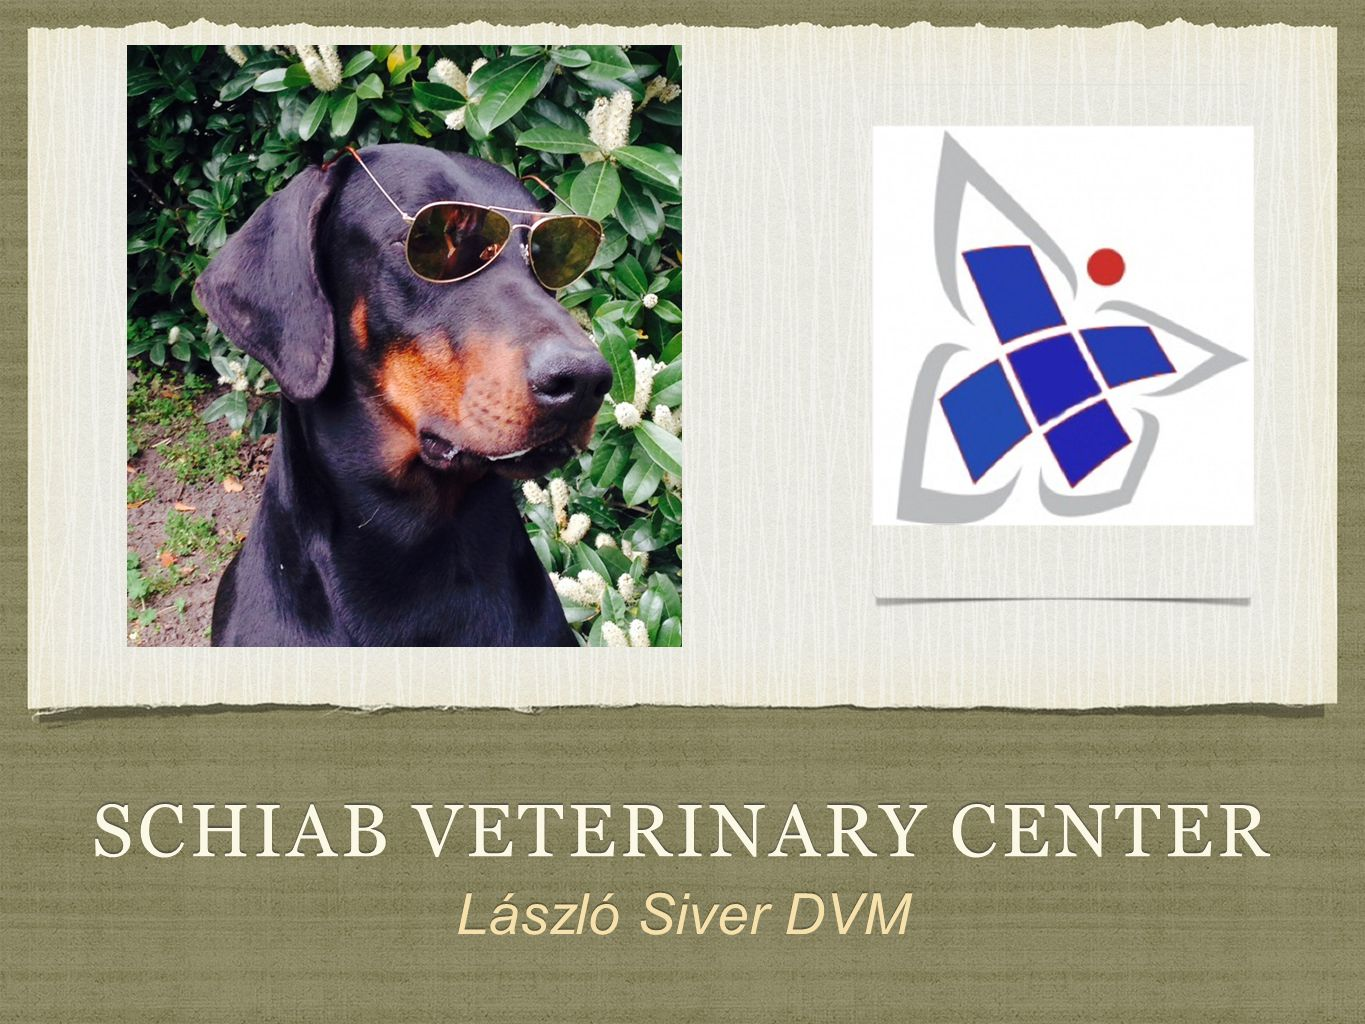 schiab veterinary center